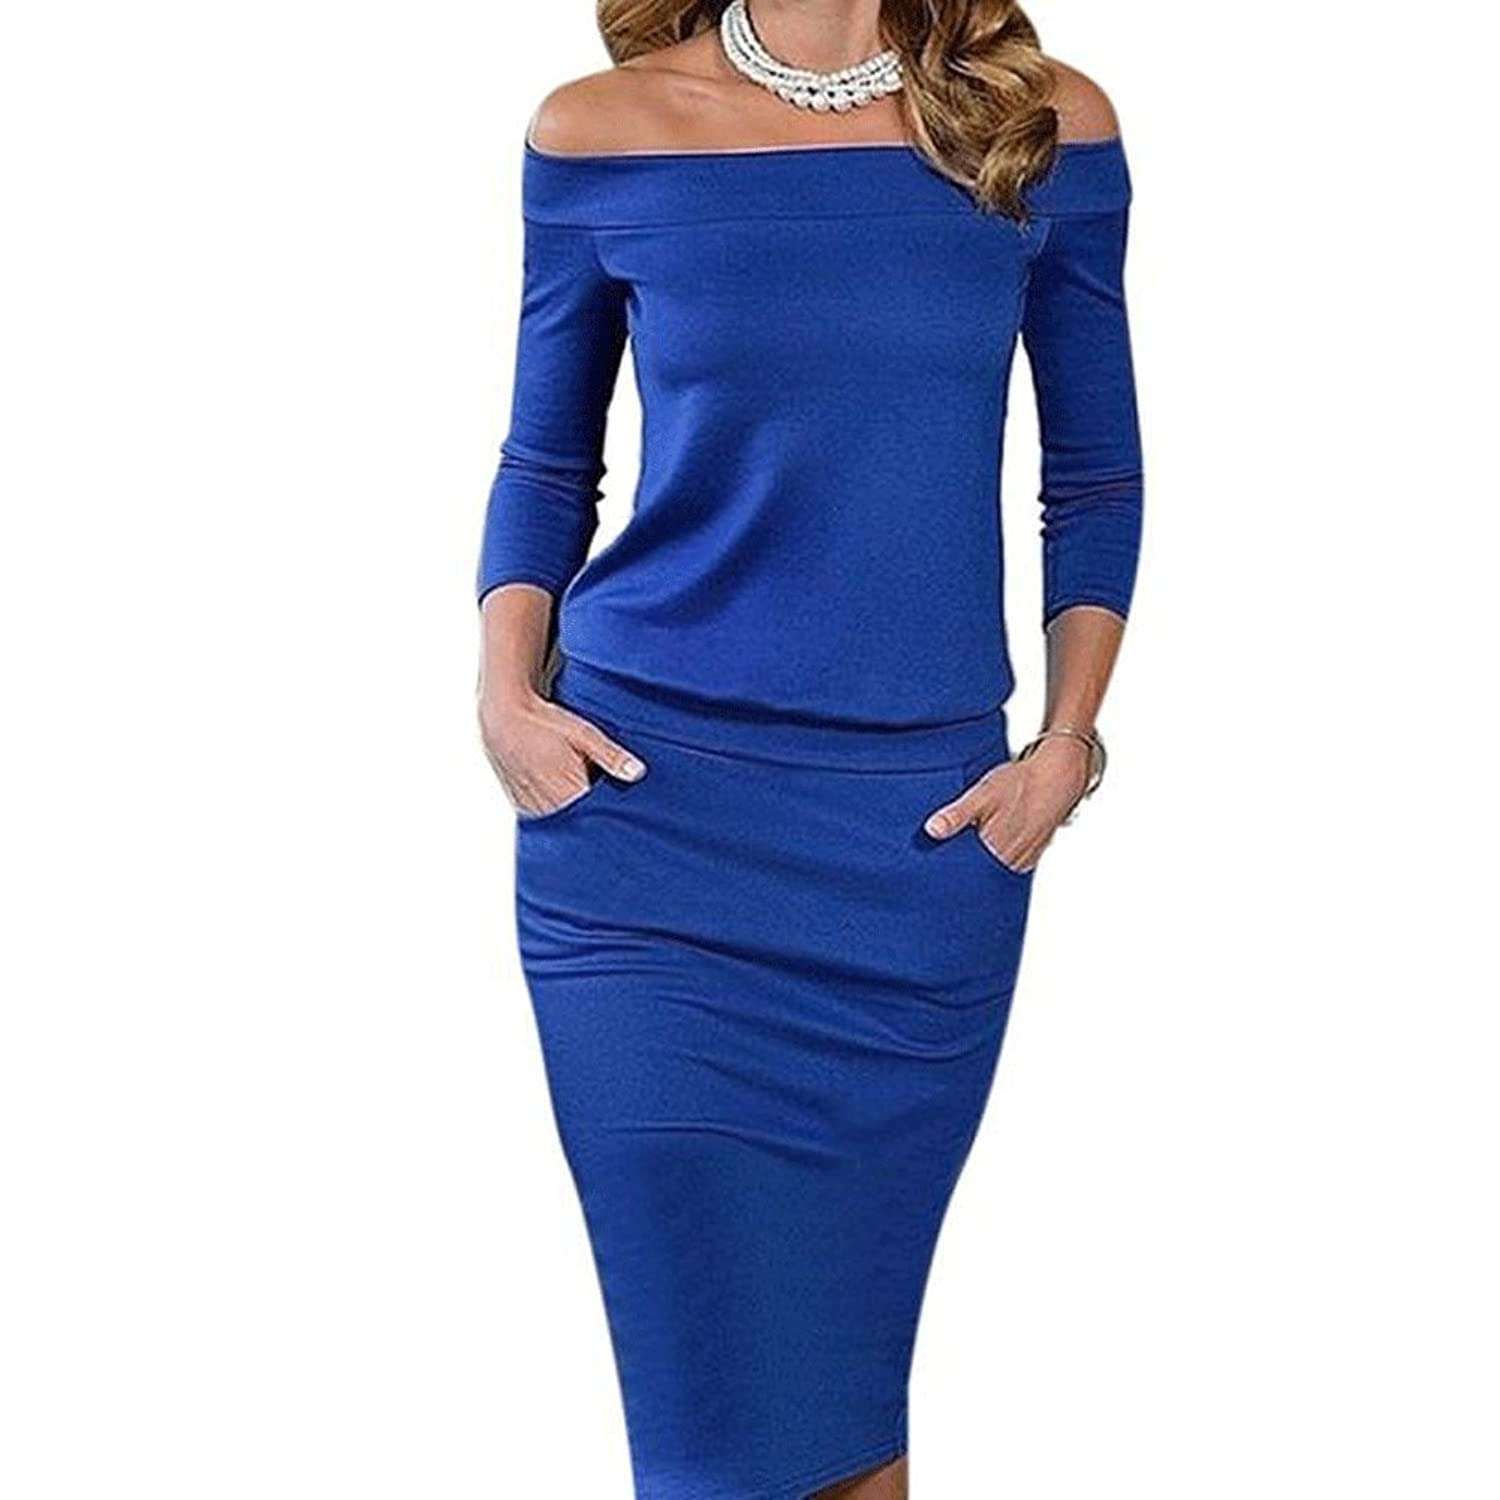 Donalworld@ Women Bandage Bodycon Long Sleeve Evening Sexy Party Cocktail Dress Blue